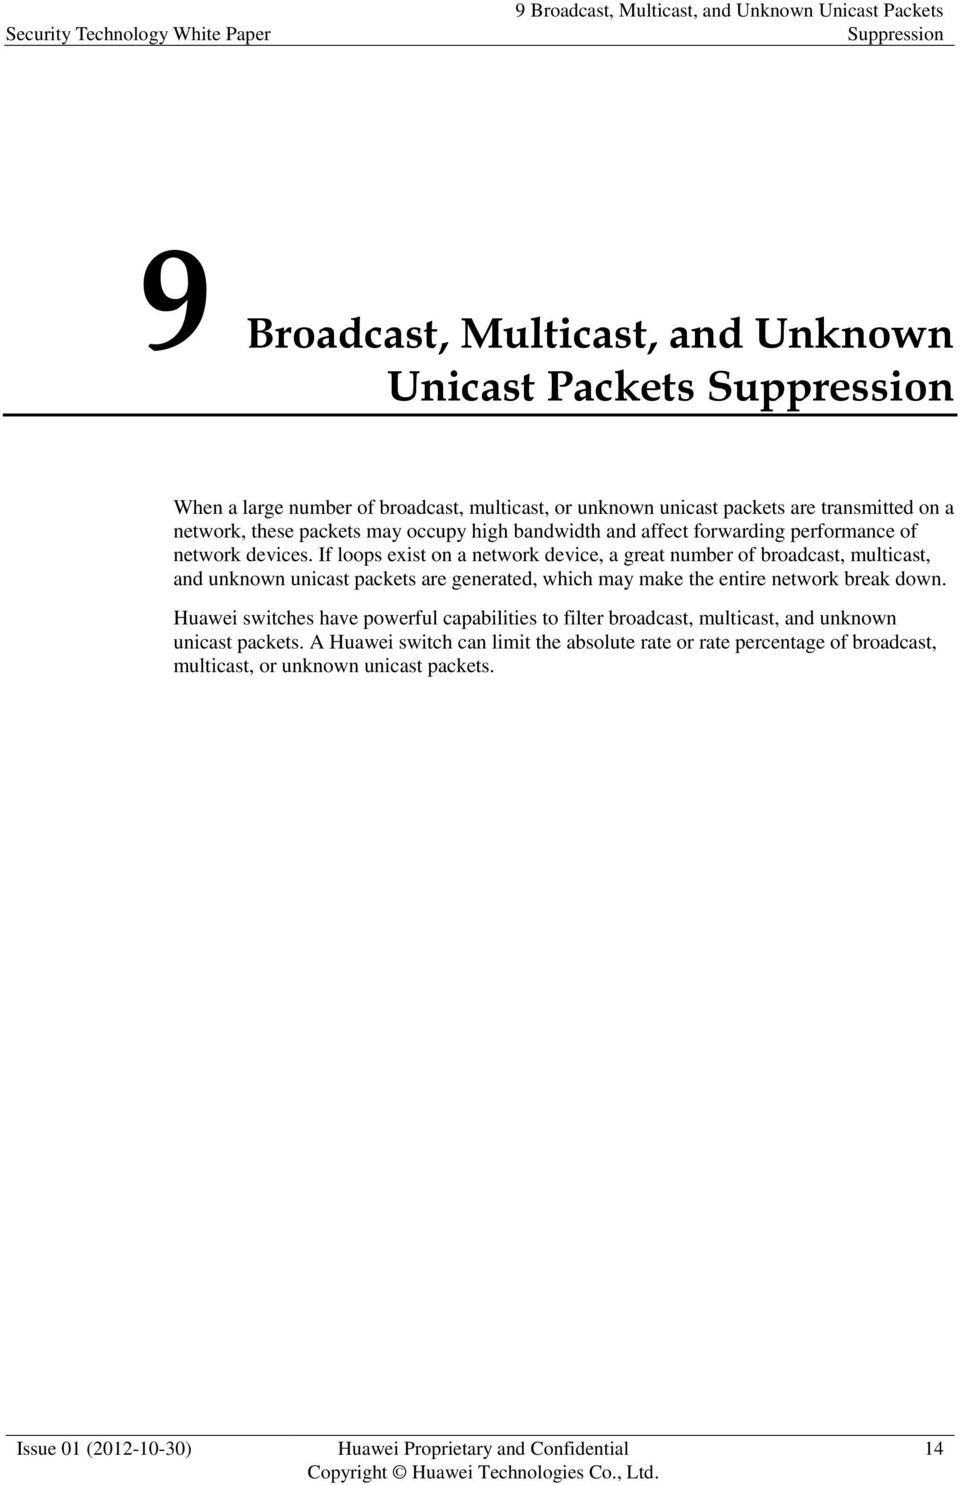 If loops exist on a network device, a great number of broadcast, multicast, and unknown unicast packets are generated, which may make the entire network break down.